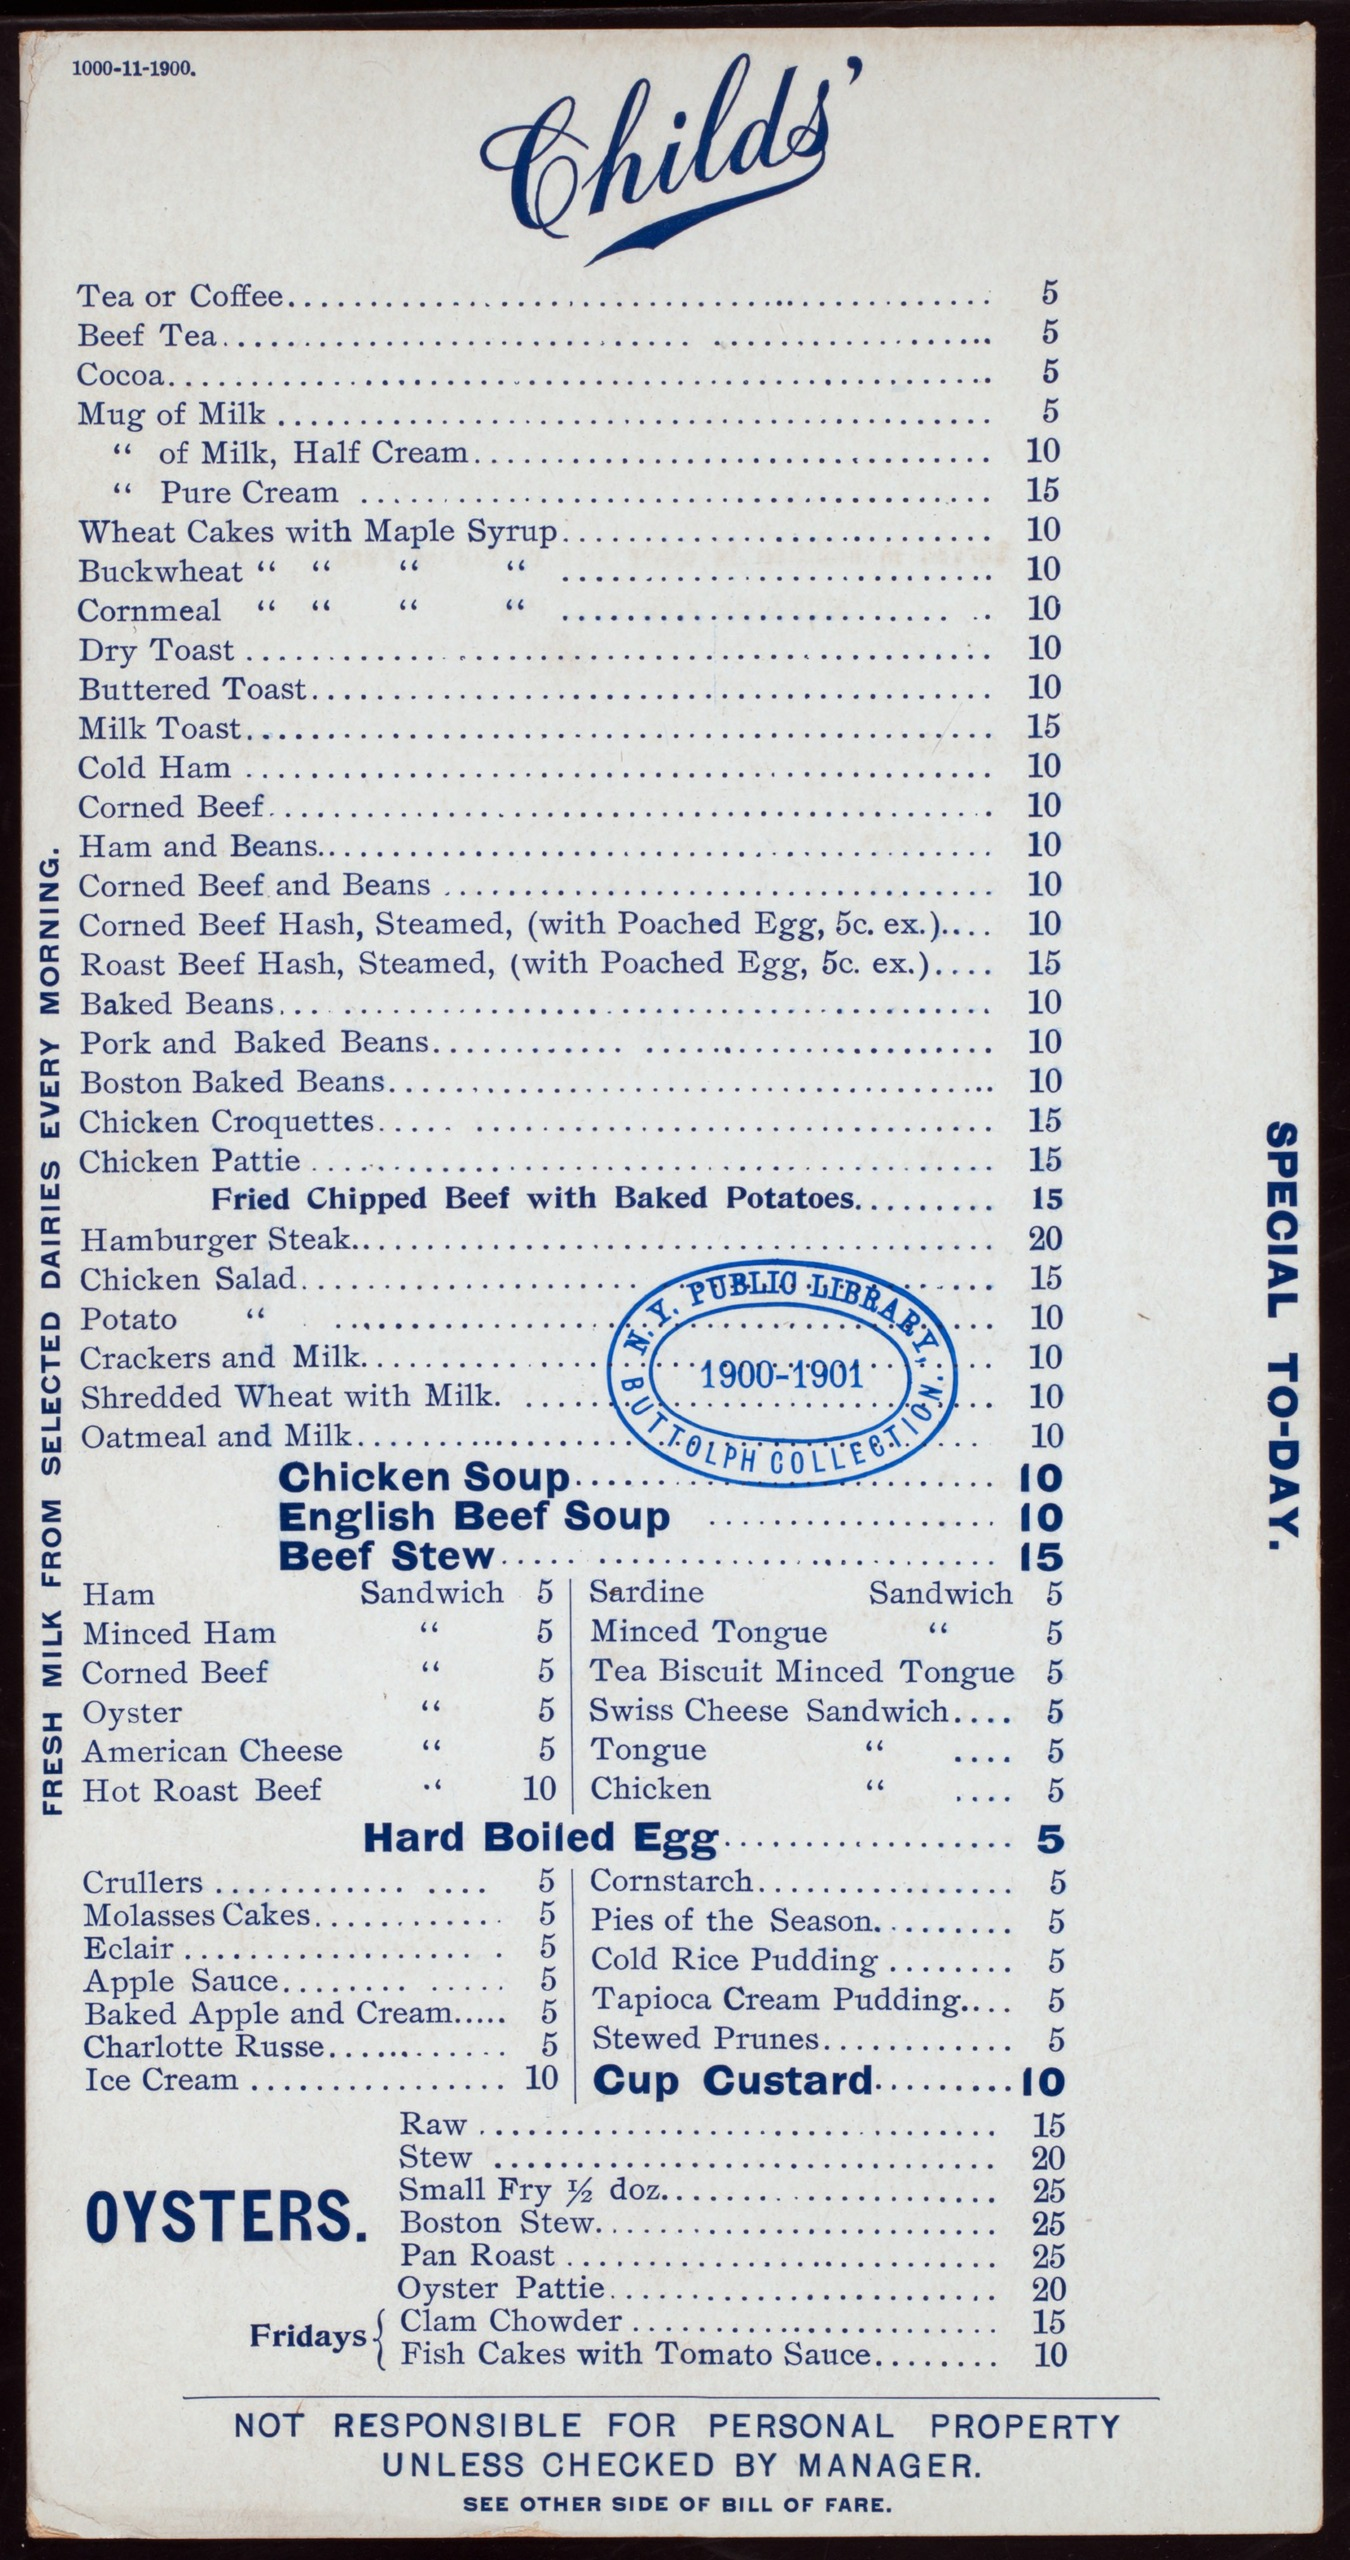 1900 Childs' restaurant menu